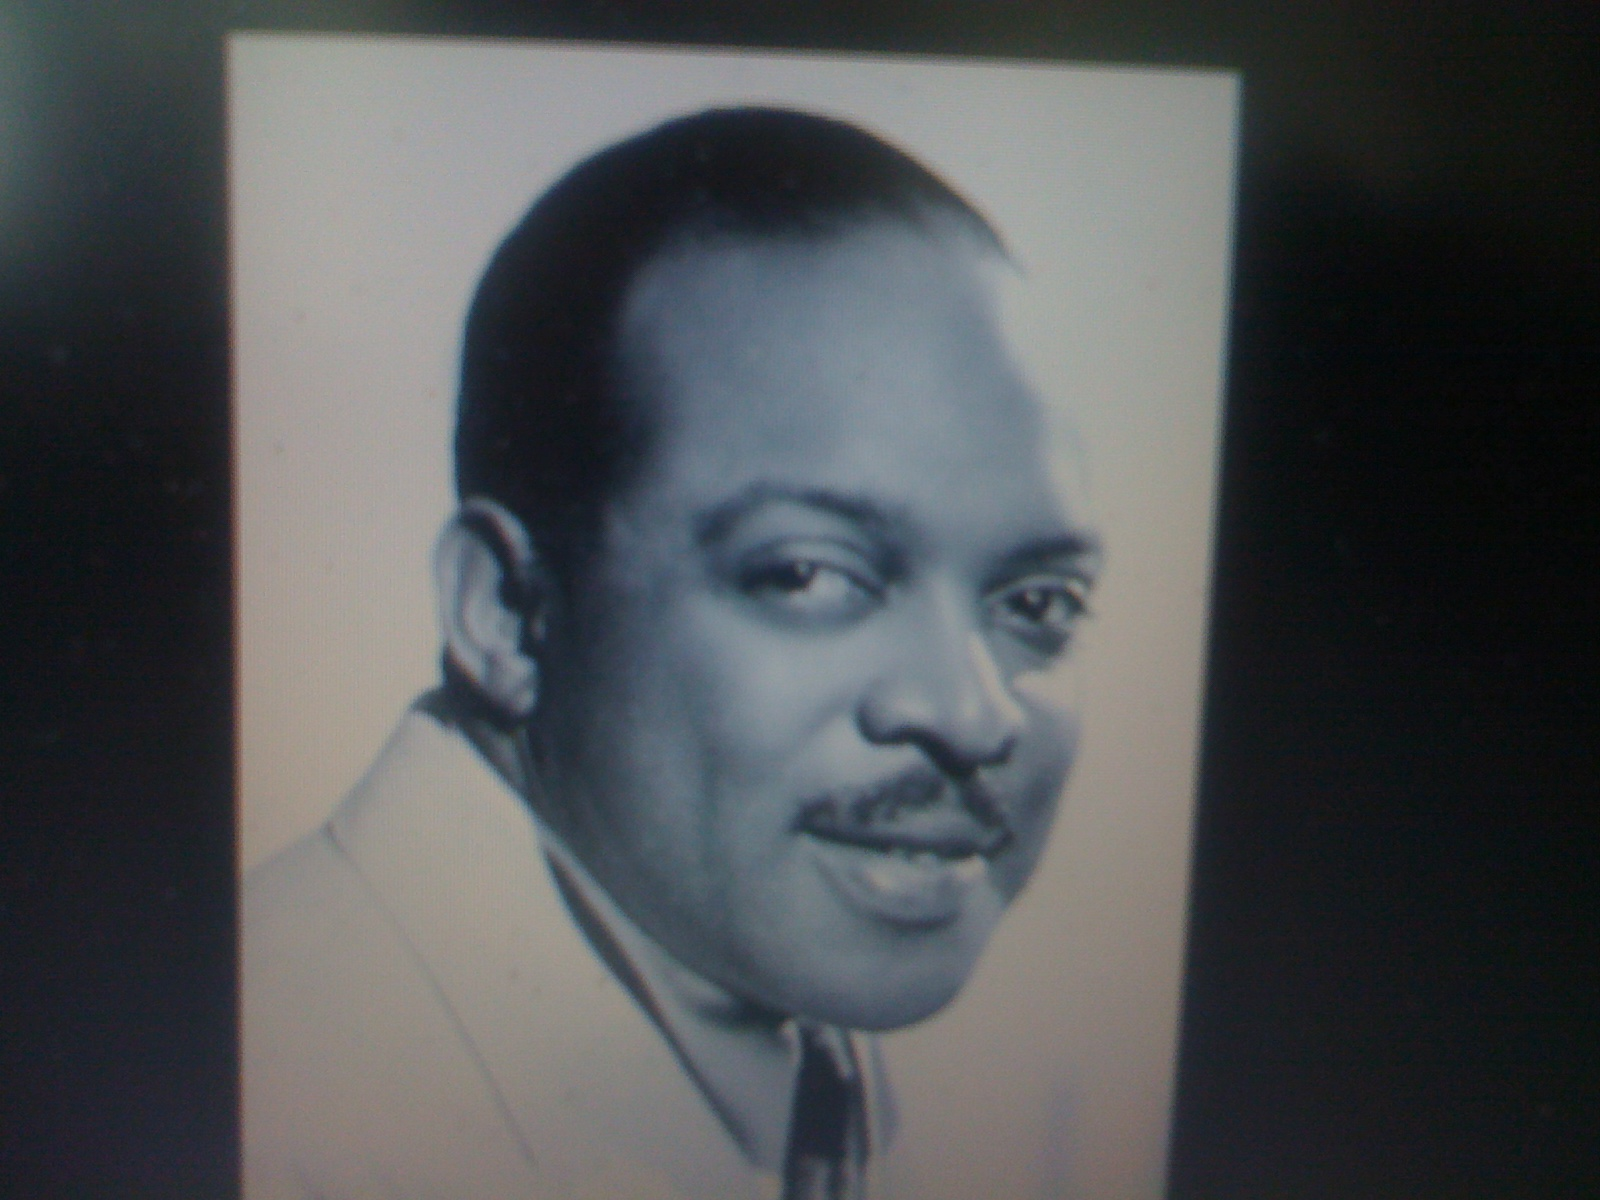 a biography of count basie an american jazz pianist and bandleader Duke ellington (edward kennedy ellington, april 29, 1899 - may 24, 1974) was an american jazz composer, pianist and bandleader, one of the most jimmie lunceford james melvin jimmie lunceford (june 6, 1902 - july 12, 1947) was an american jazz alto saxophonist and bandleader in the swing era.